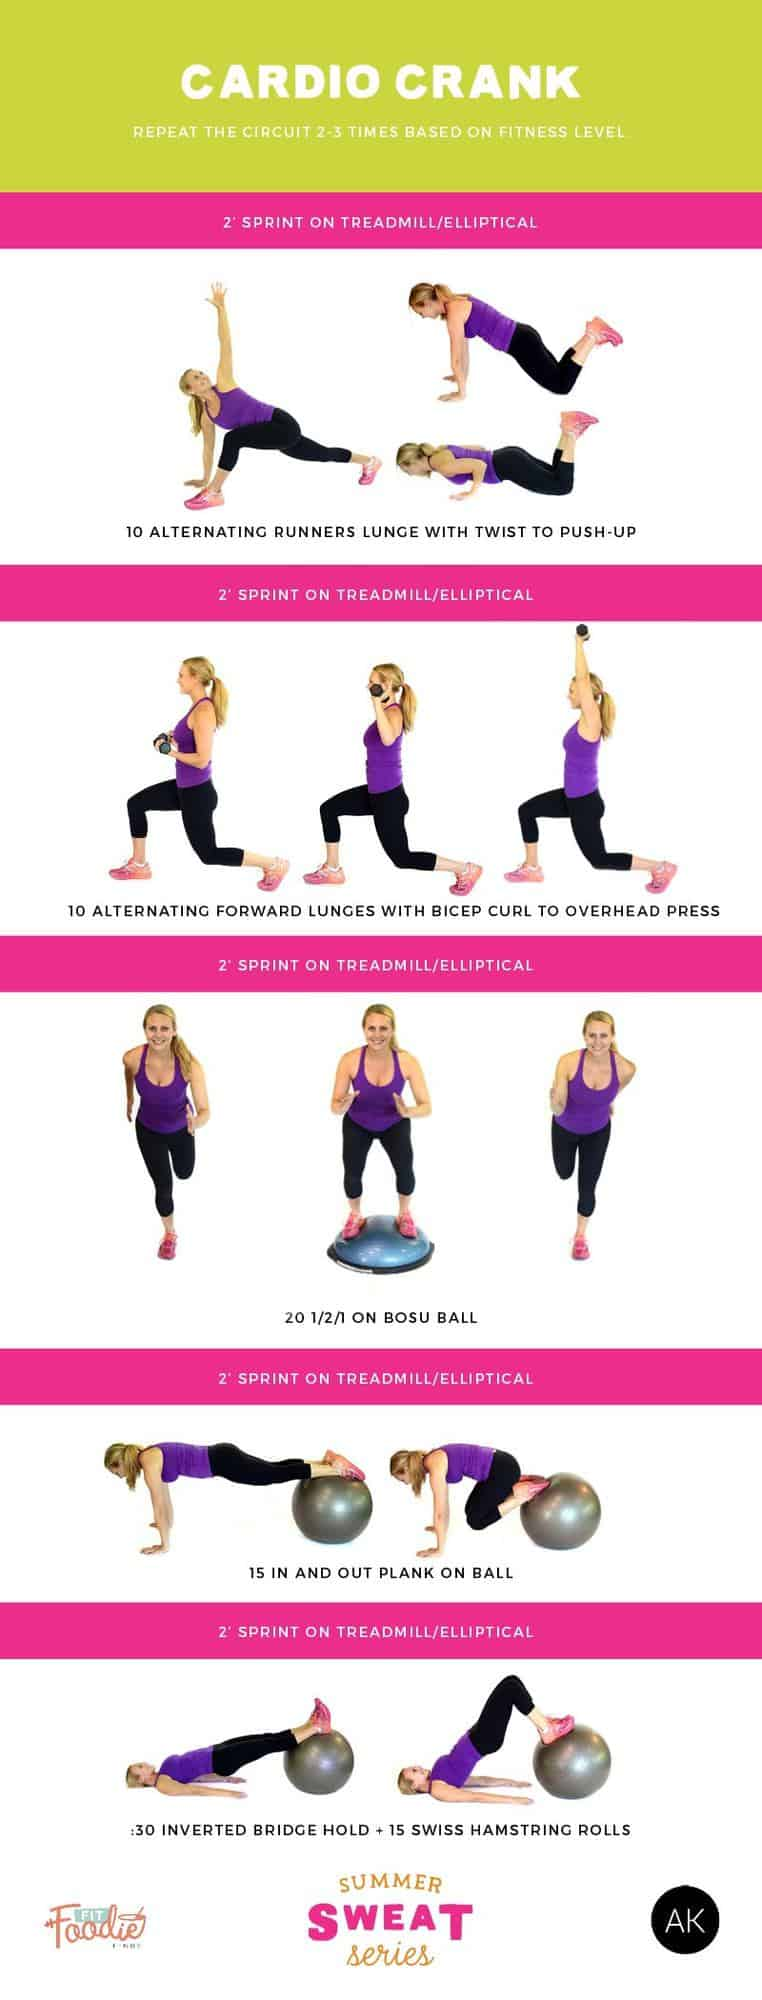 Torch Calories with this Cardio Workout that combines 2 minute sprint intervals and full-body strength exercises!